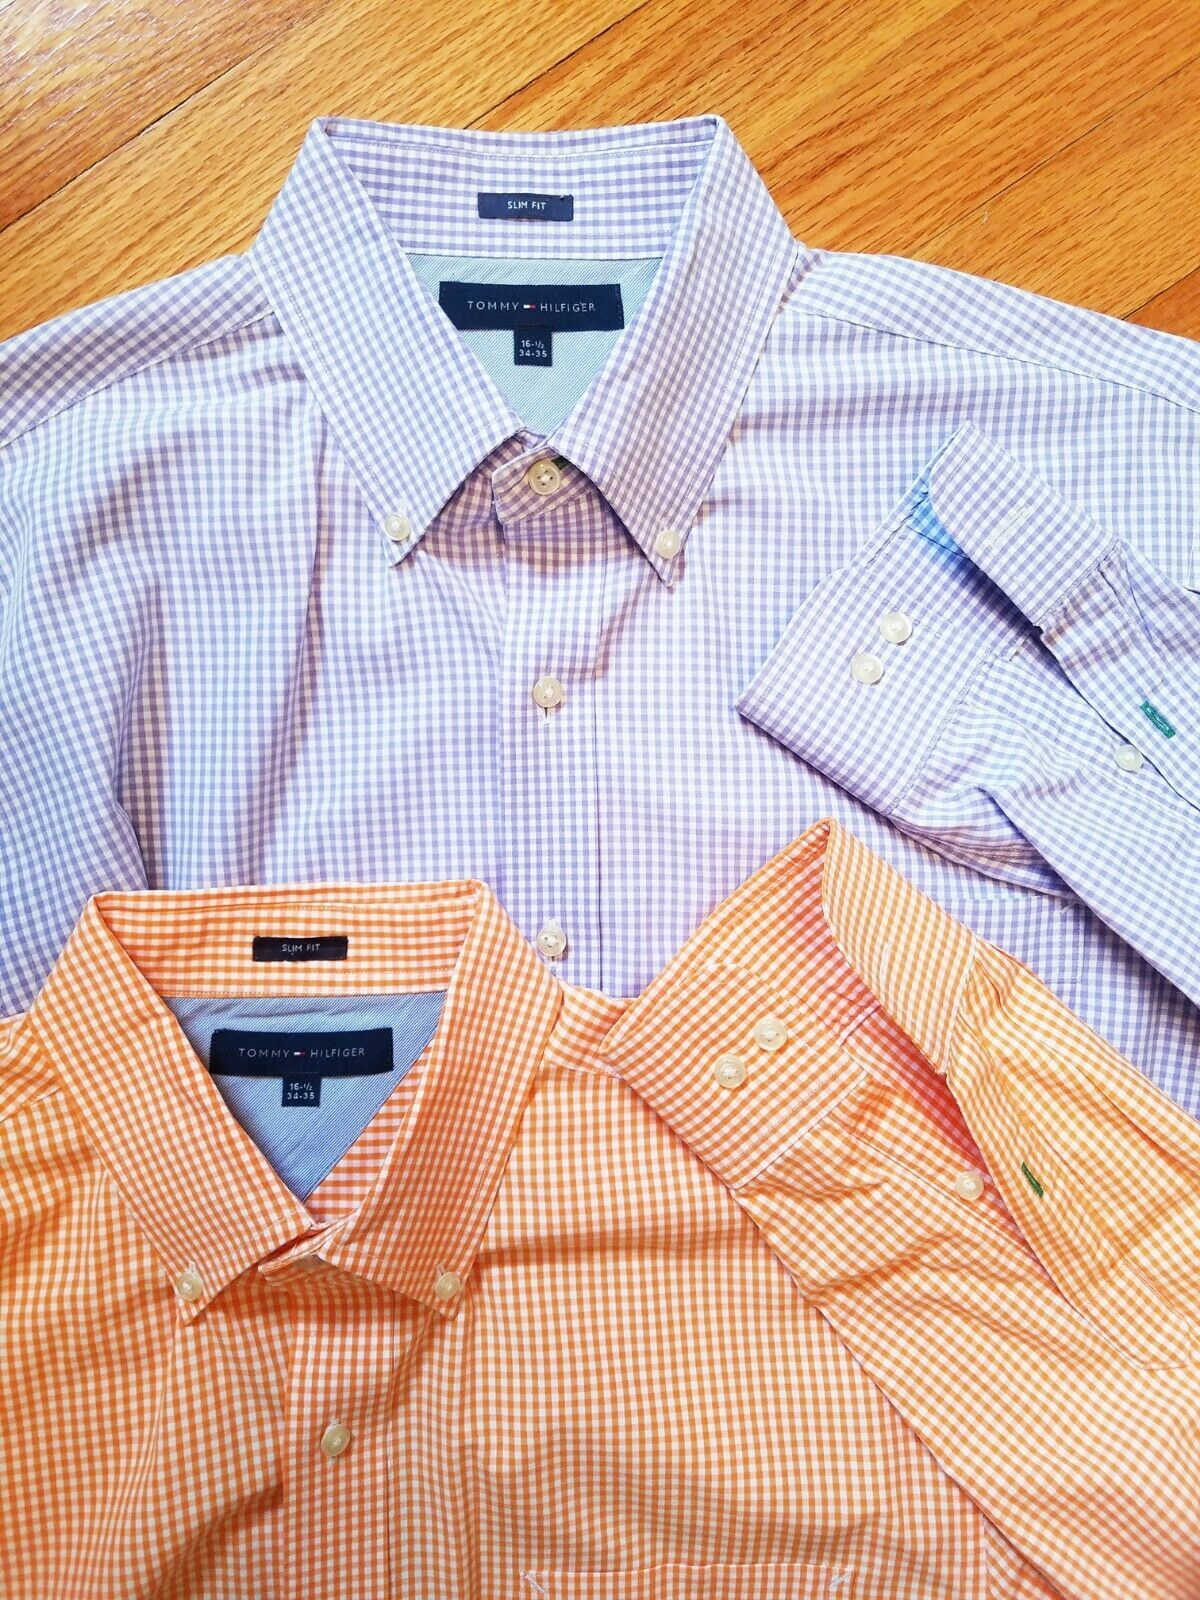 Set of Two Tommy Hilfiger Mens Shirt 16 12 34 35 Check Long